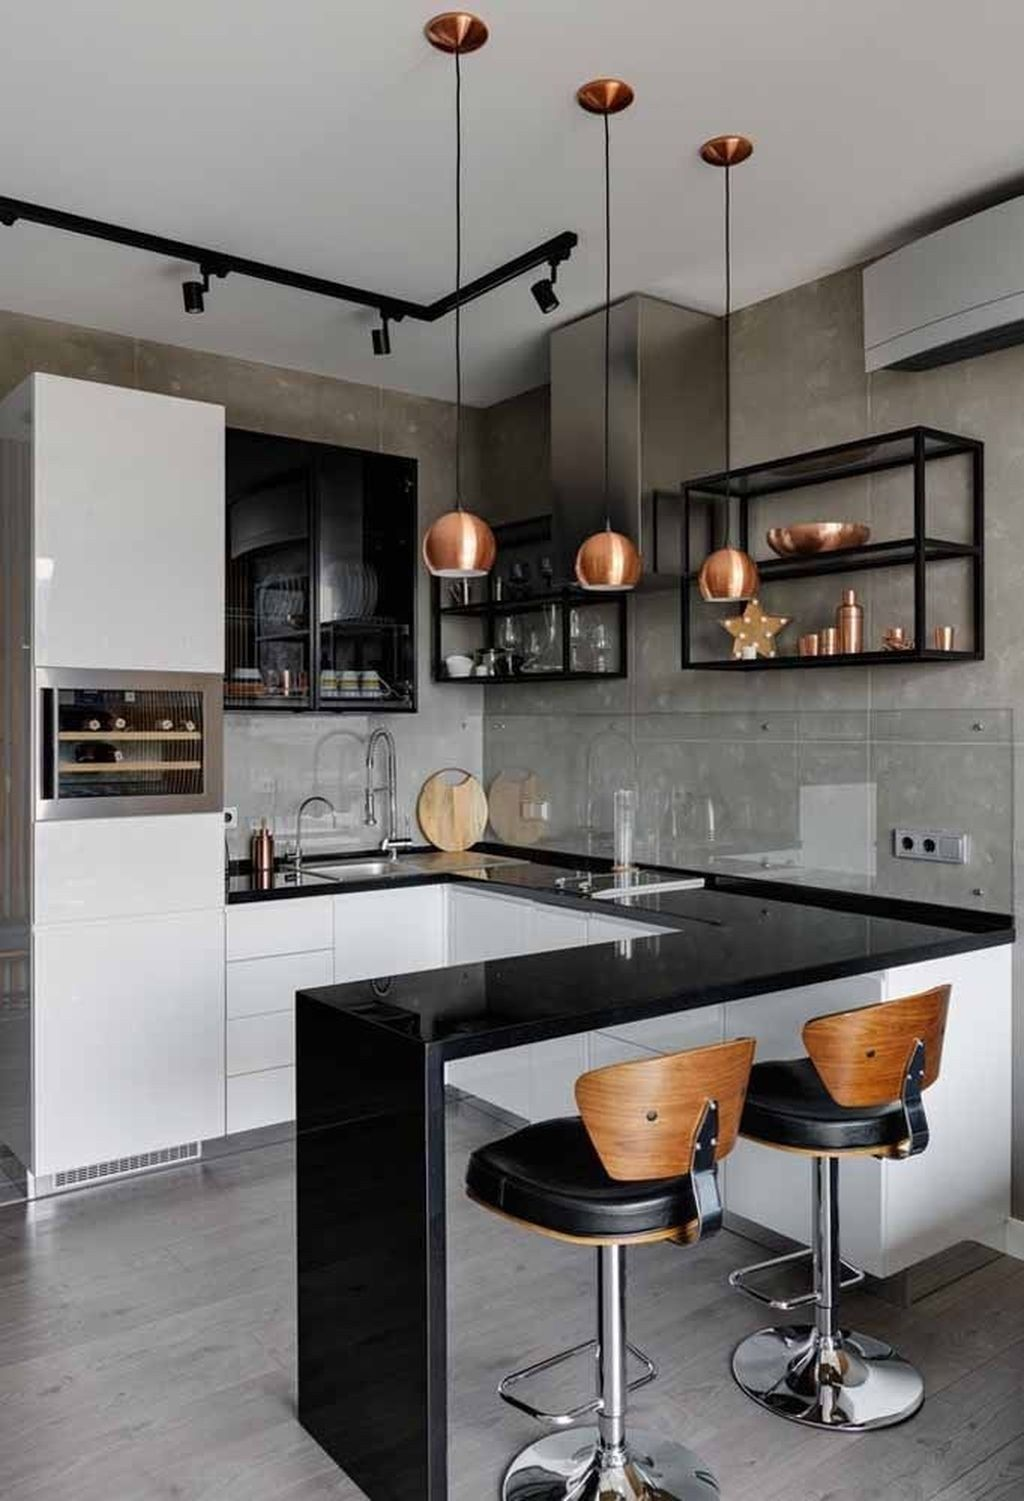 48 Stunning Apartment Kitchen Decorating With Images Kitchen